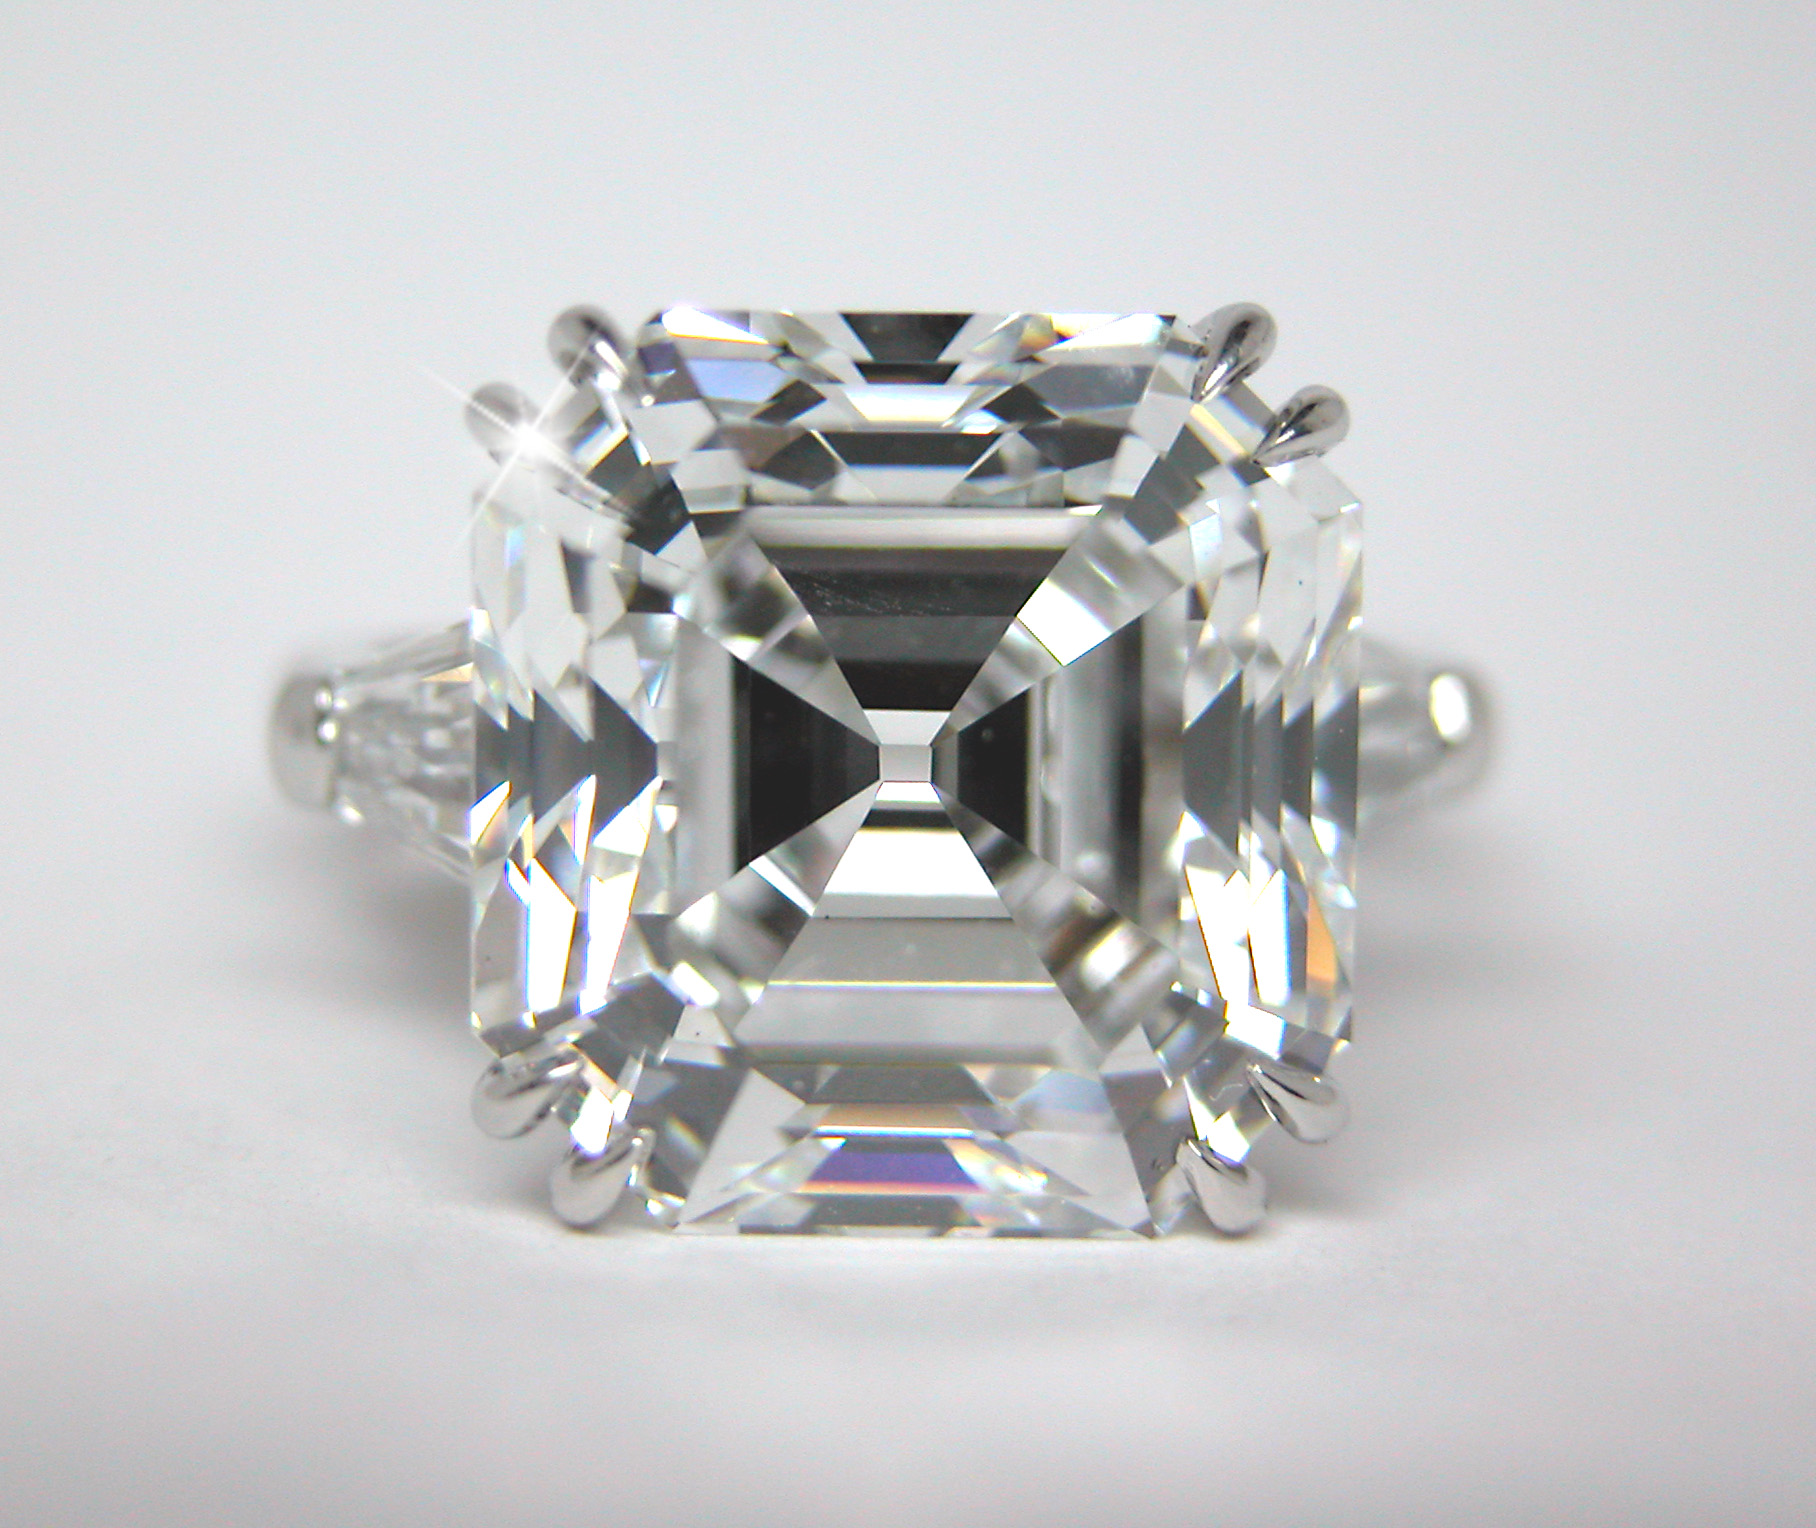 sample diamonds clarity diamond asher graded k asscher hrd carat gia color i example in illustration